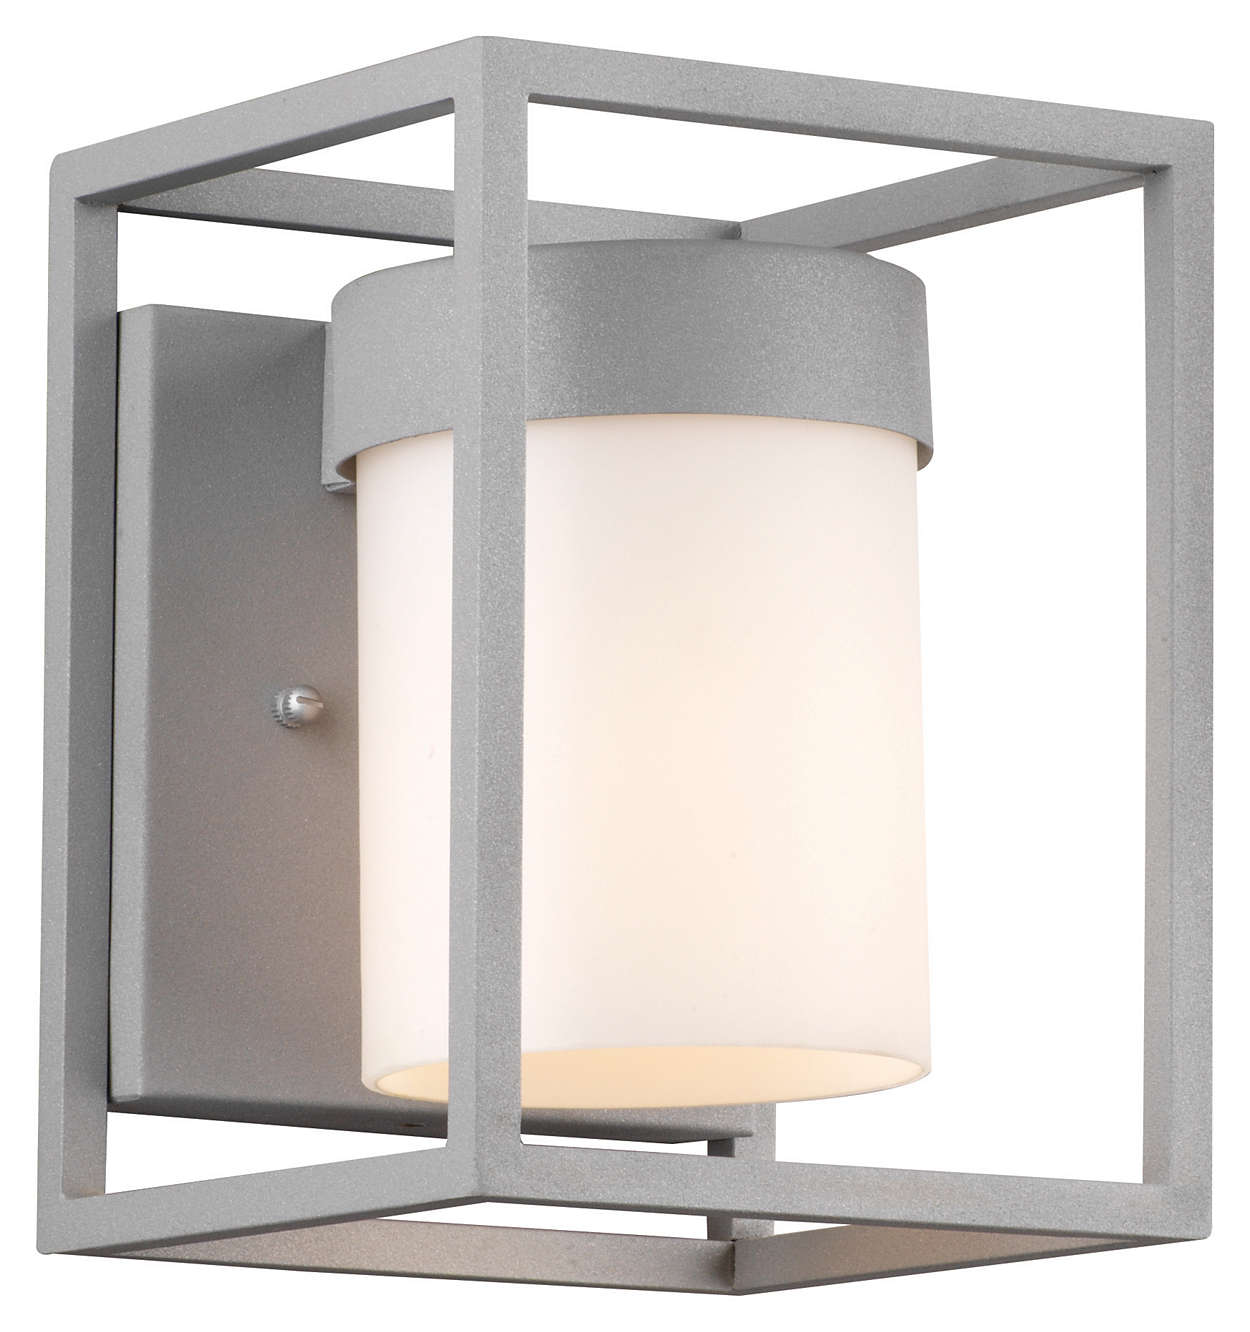 Cube 1-light Outdoor Wall in Graphite finish